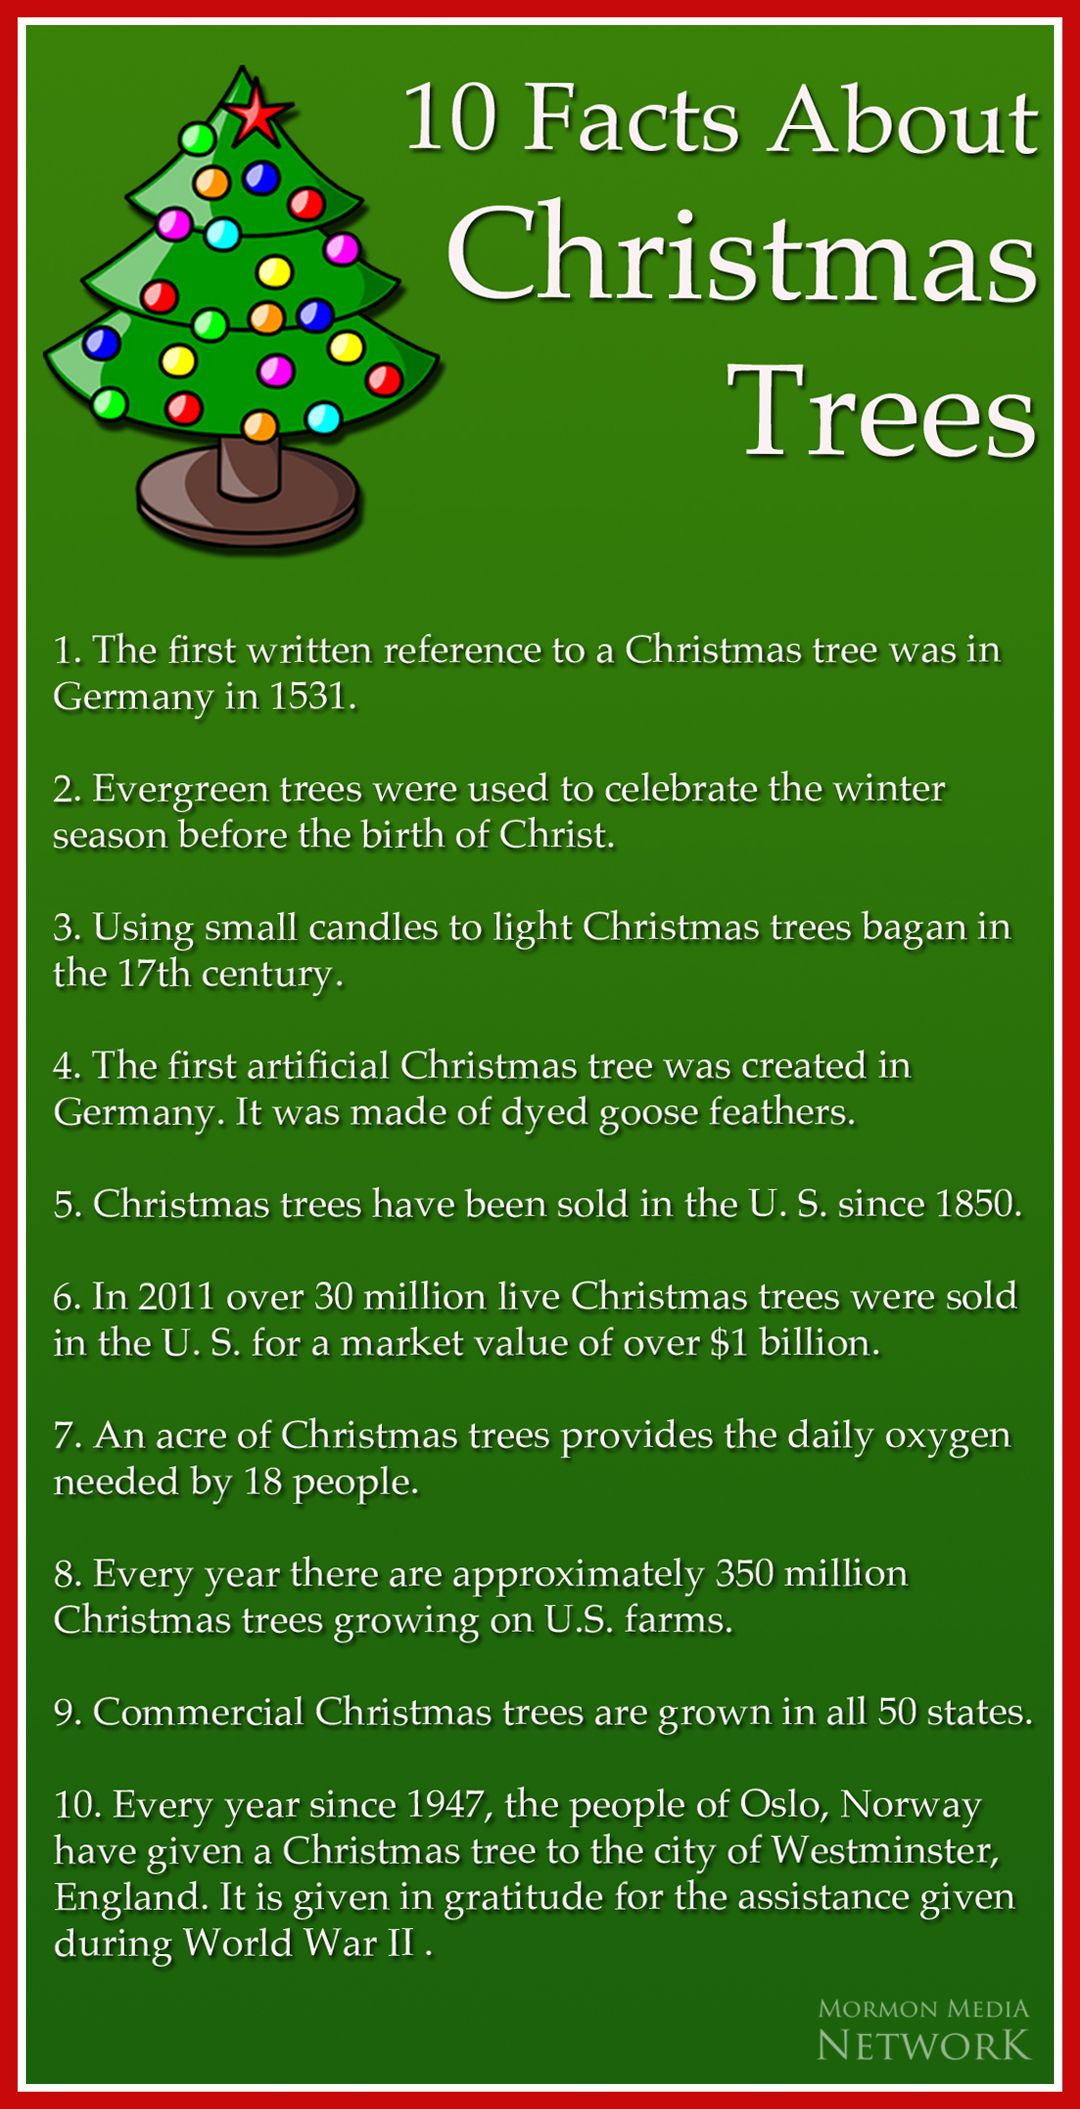 Facts About Christmas.Mormon Media Network Christmas Facts About Christmas Trees